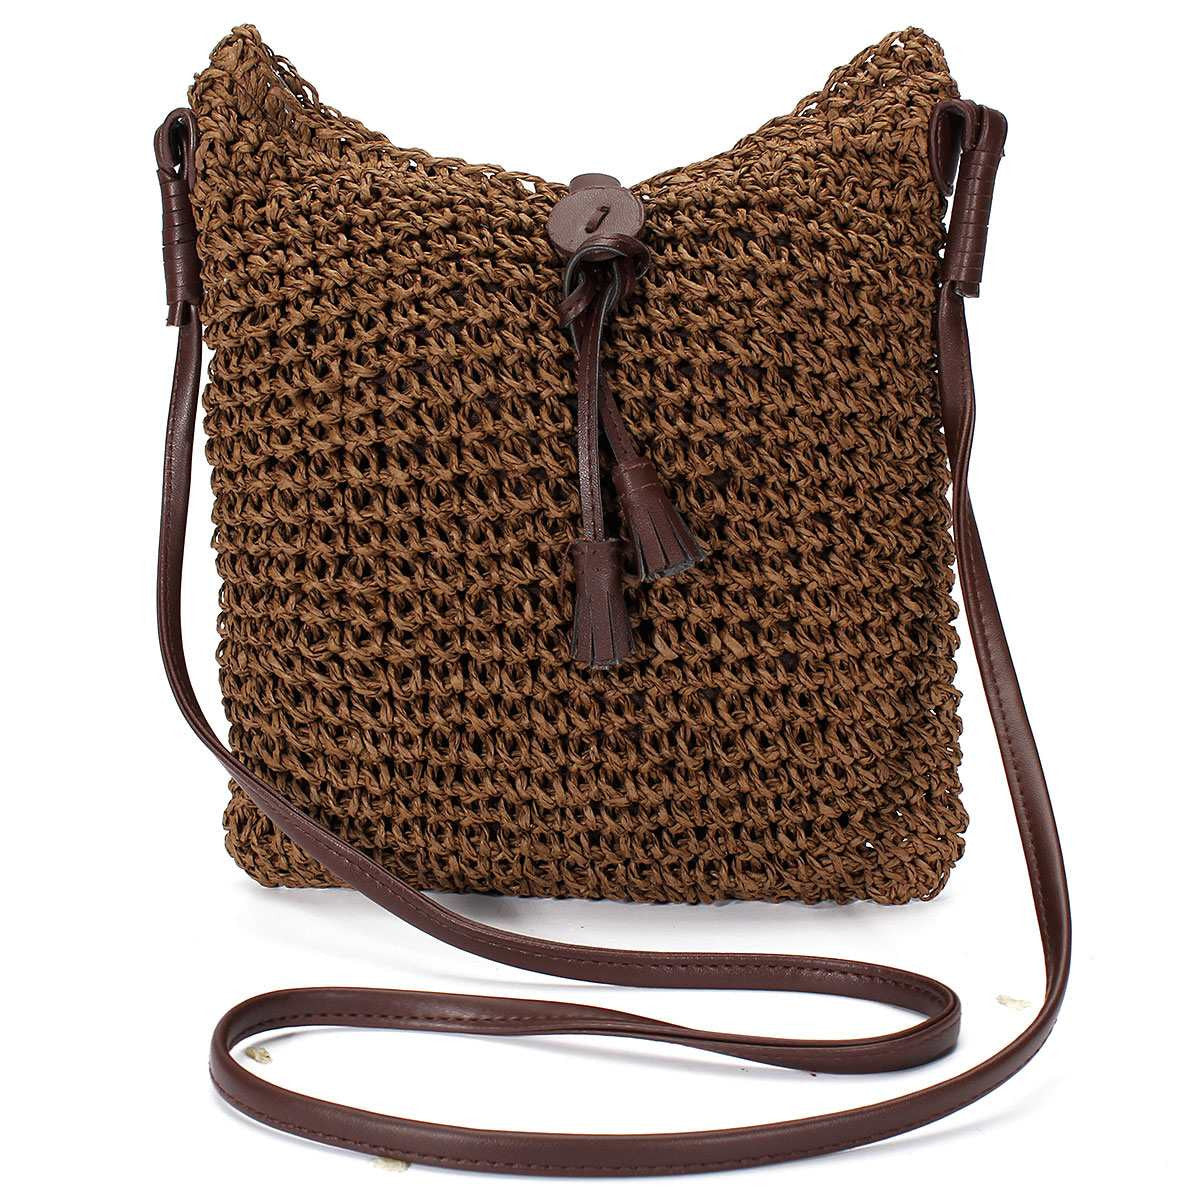 On the Road Again Crossbody Jute Handbag - Sassy Posh - 3